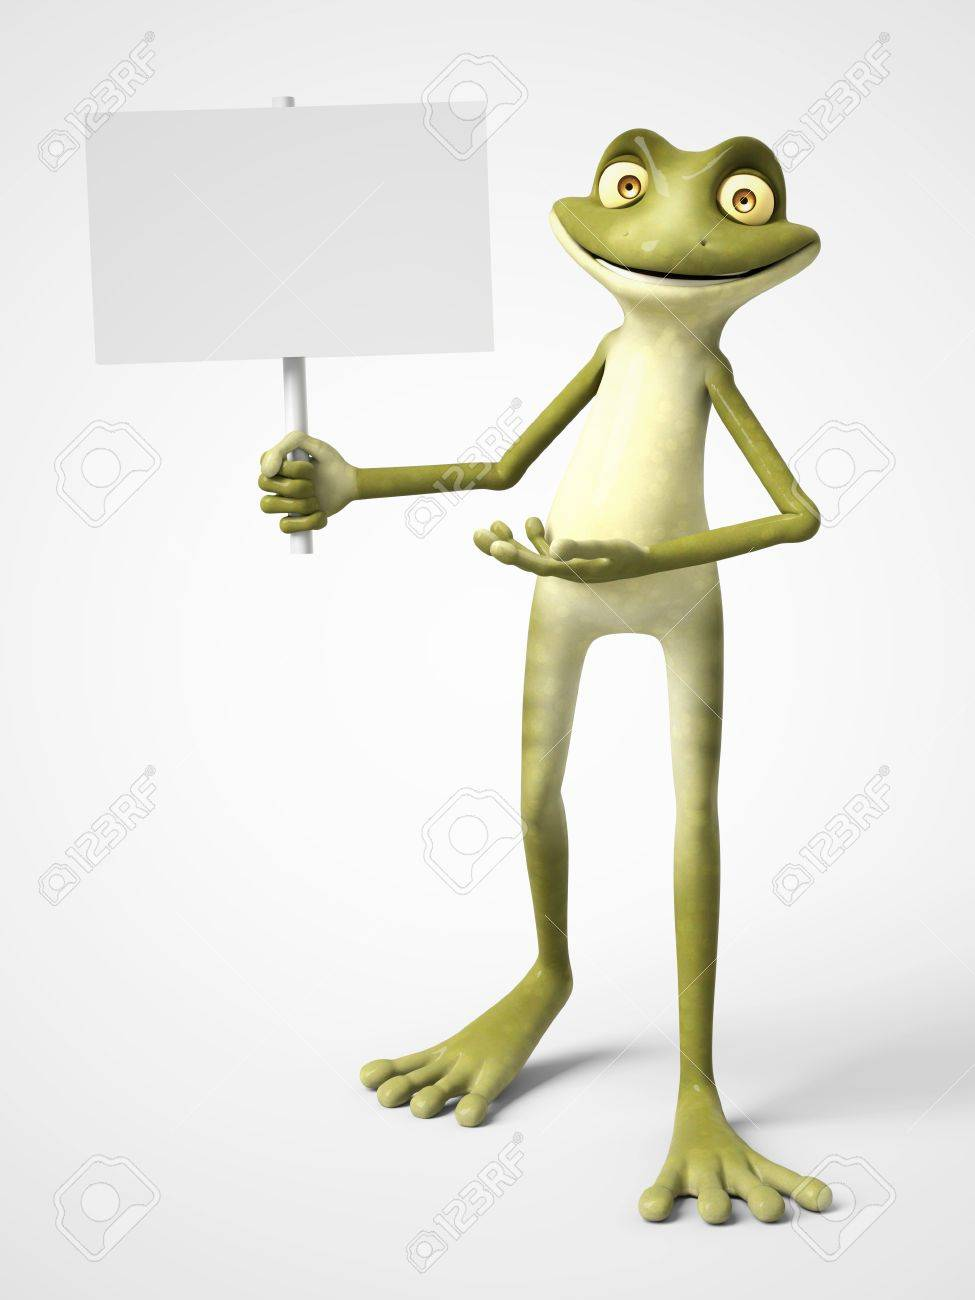 3d rendering of a smiling cartoon frog holding a blank sign